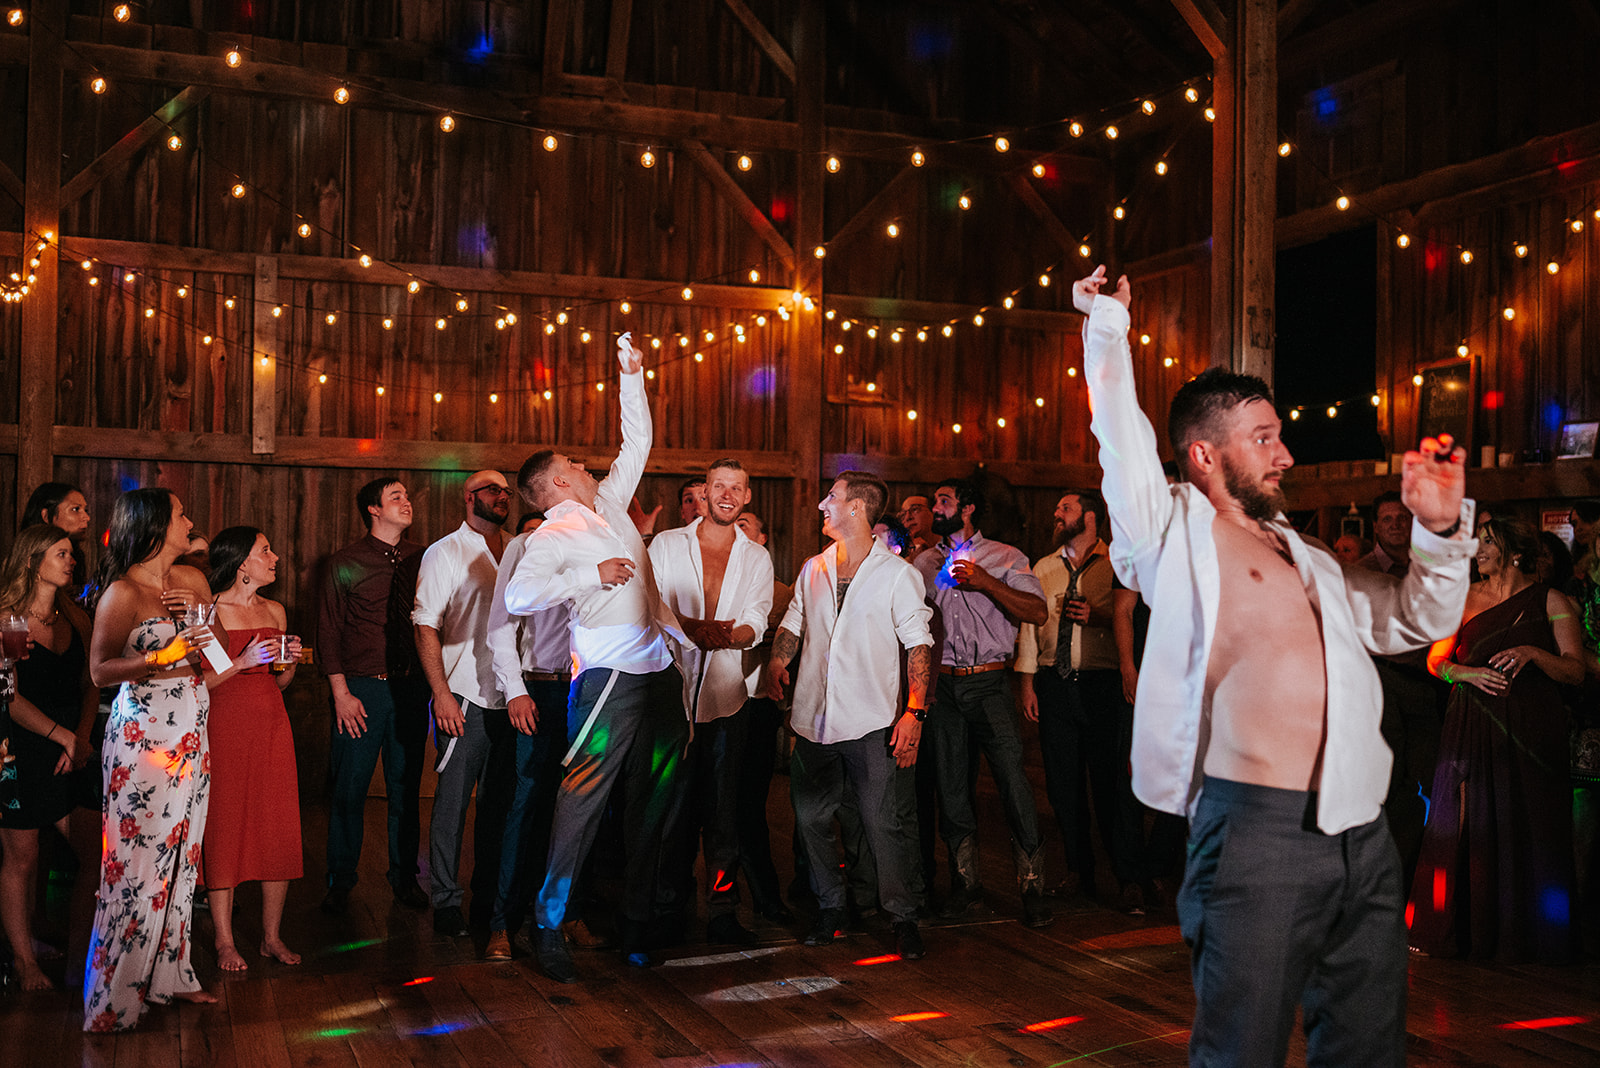 overthevineswisconsinwedding_1555.jpg